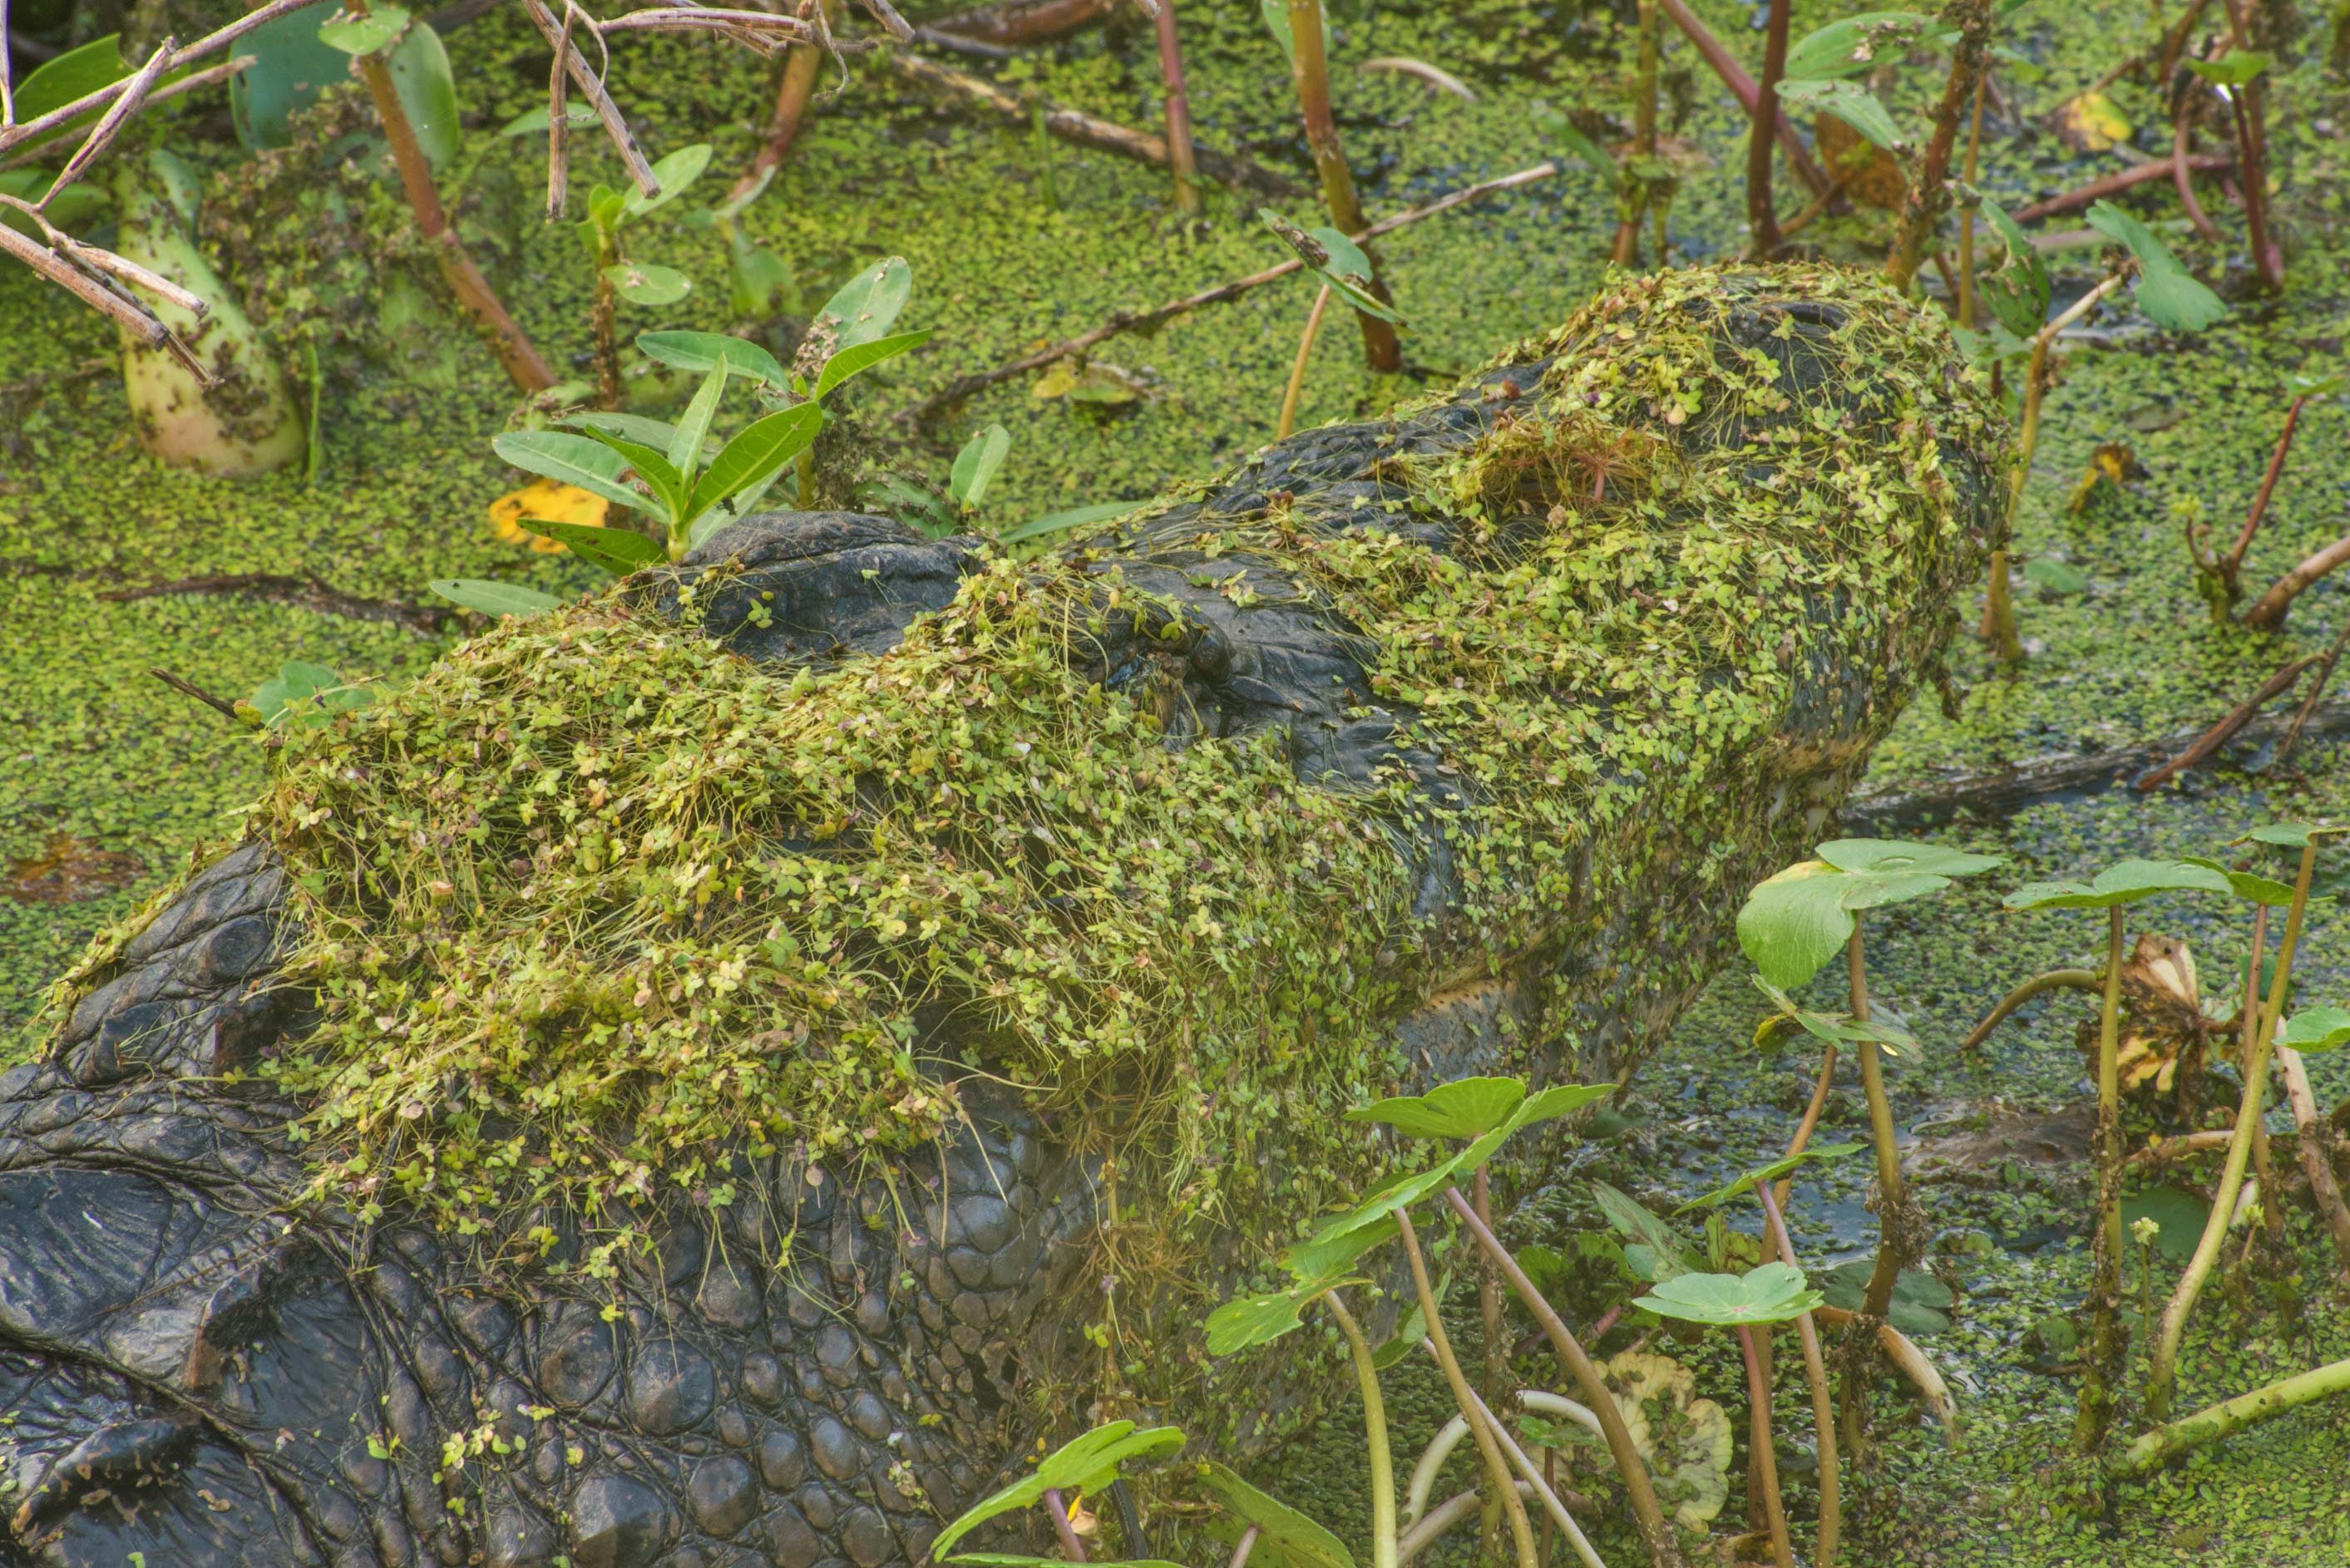 Duckweed on alligator's head from Spillway Trail...Bend State Park. Needville, Texas